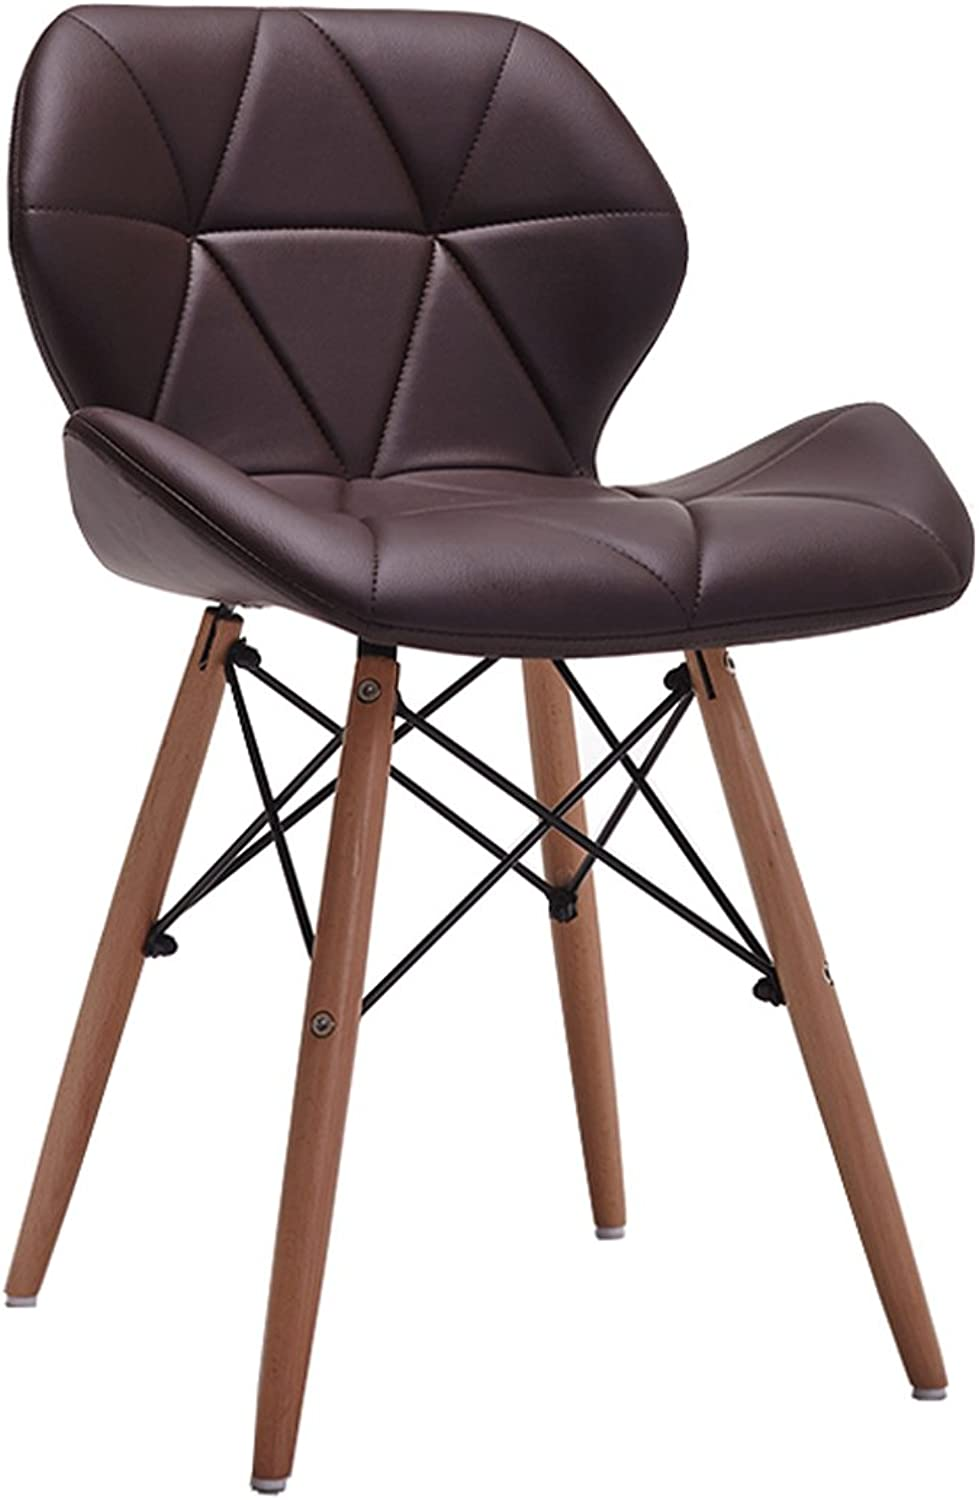 HZB Nordic Household Chair, Leisure Chair, Computer Chair, Simple Stool